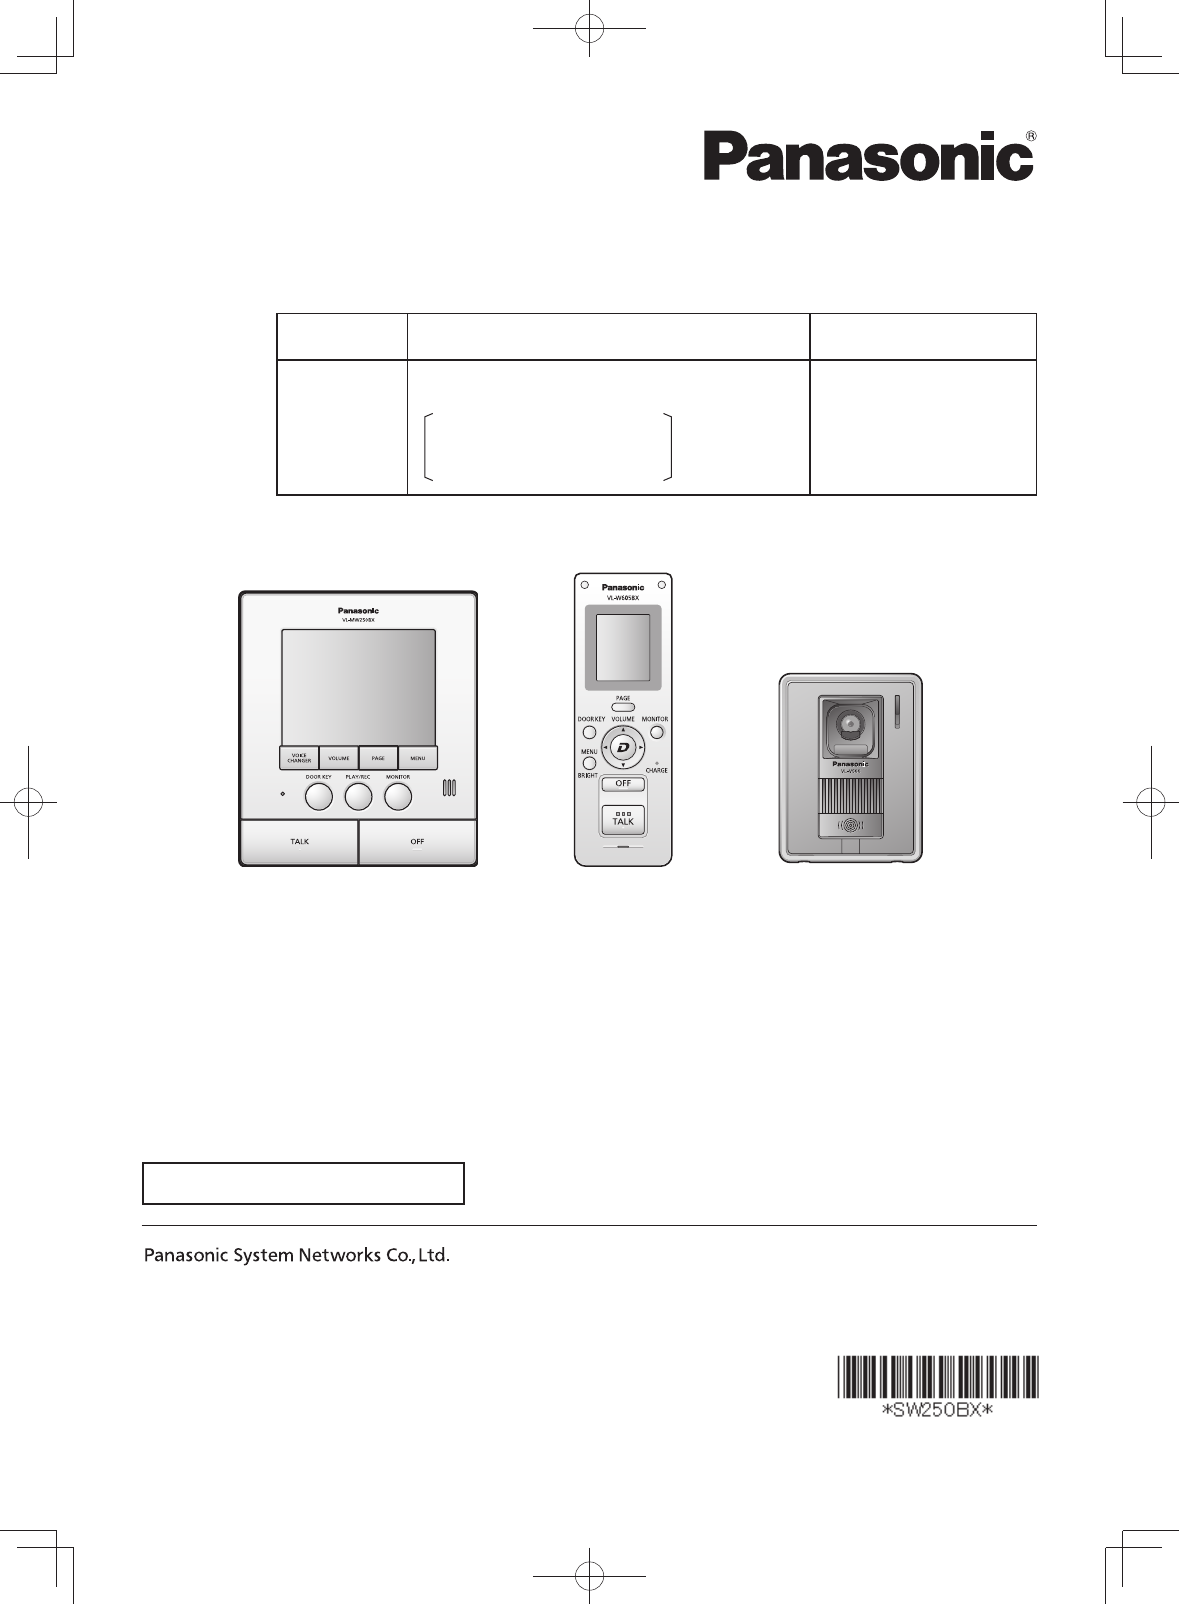 18ff134c 352f 44ab ac58 503e783f04e1 bg1 panasonic intercom system vl sw250bx user guide manualsonline com panasonic intercom wiring diagram at edmiracle.co